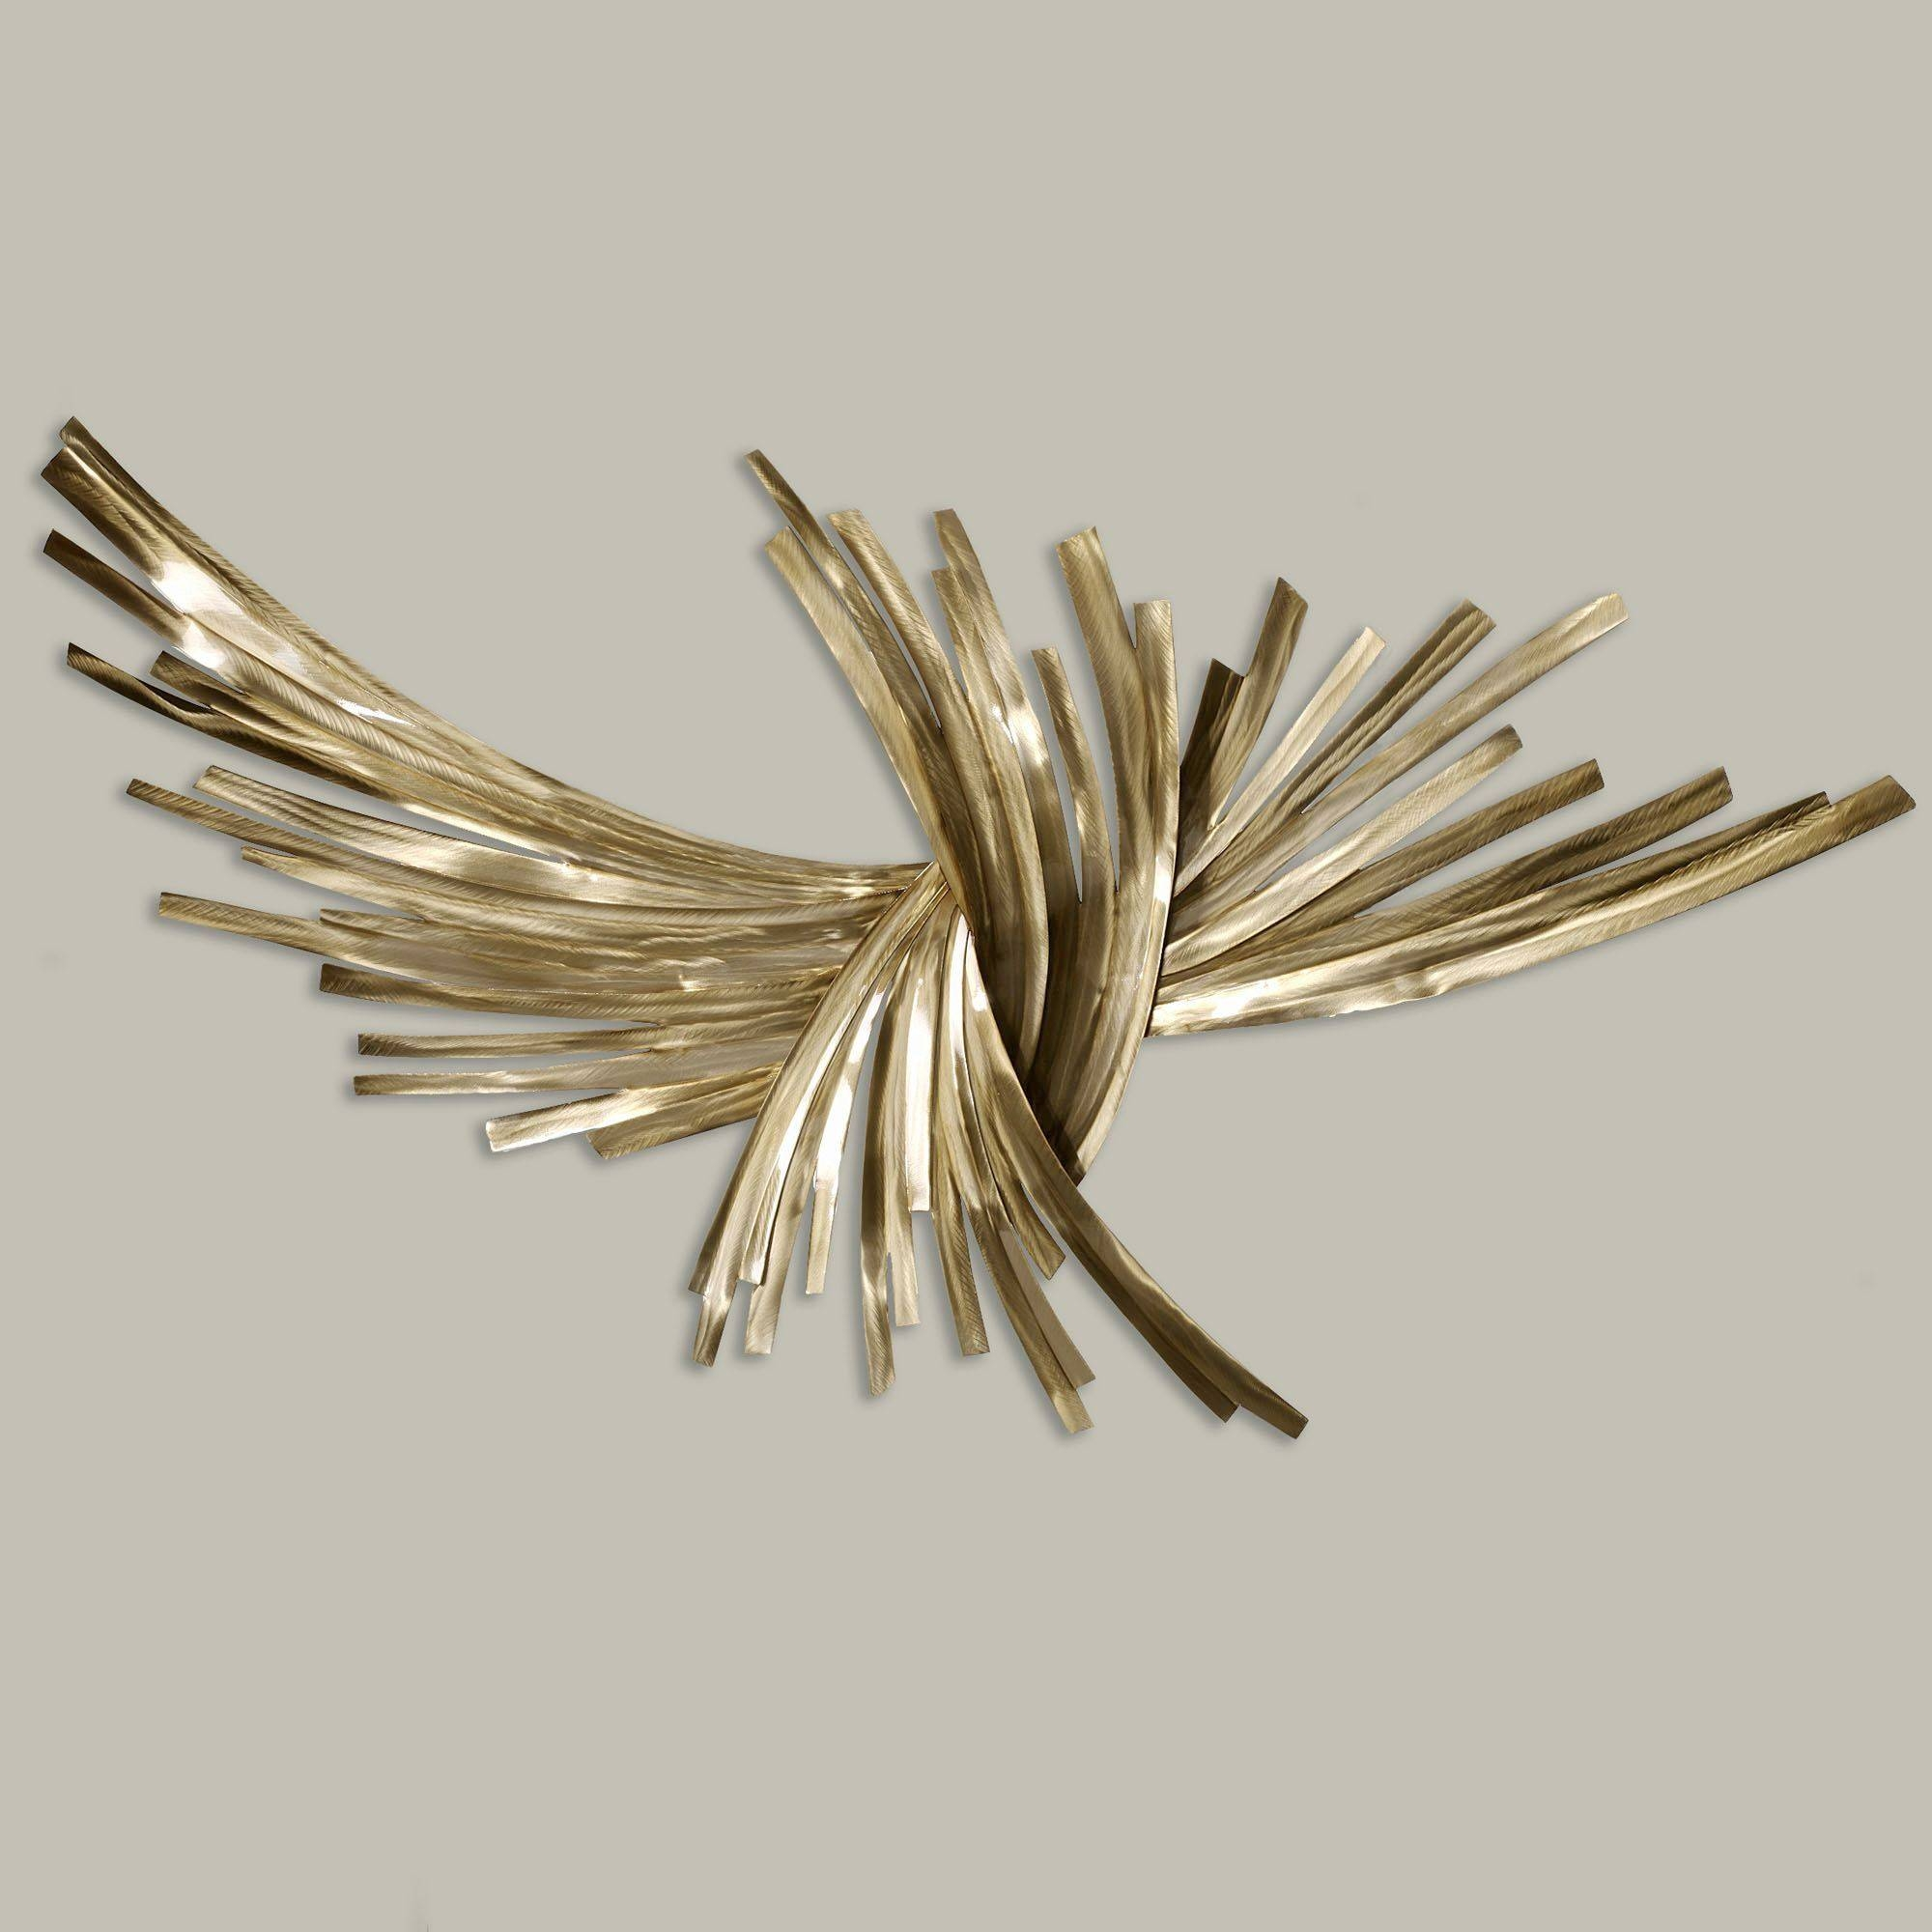 Contemporary Metal Wall Art Sculptures | Touch Of Class With Recent Silver Metal Wall Art (View 1 of 20)